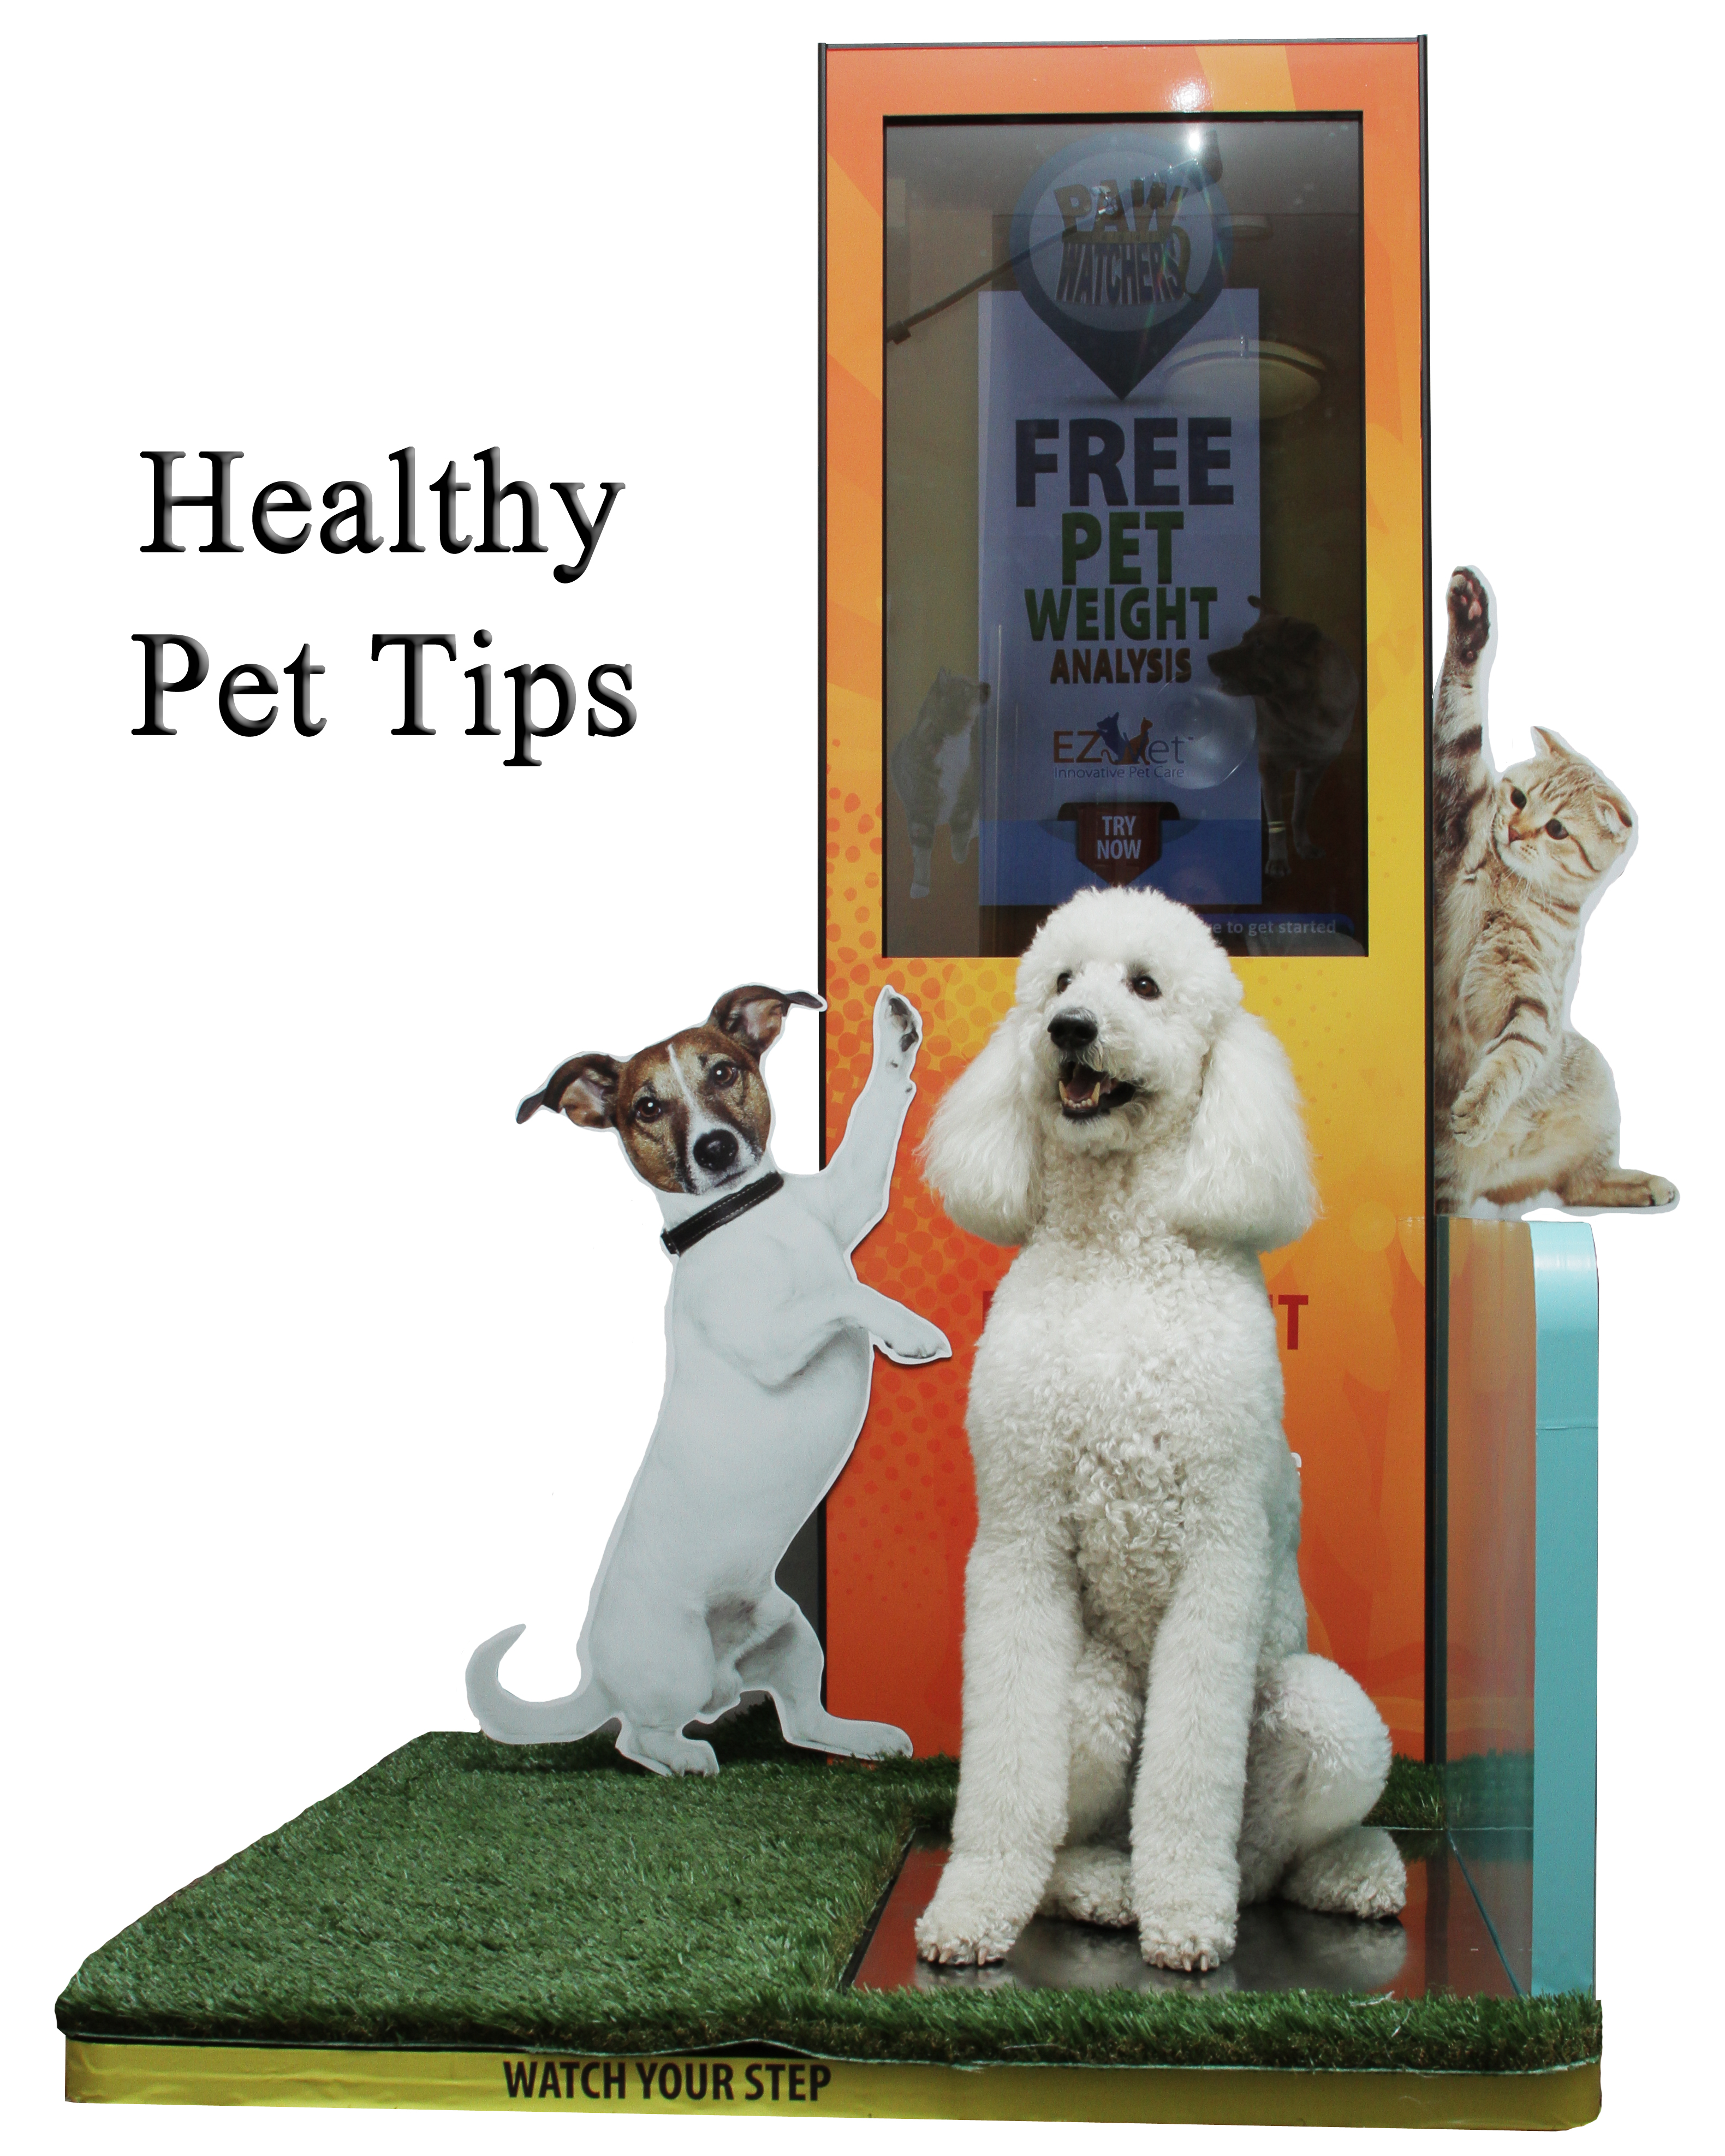 4 great tips to keep your pet healthy